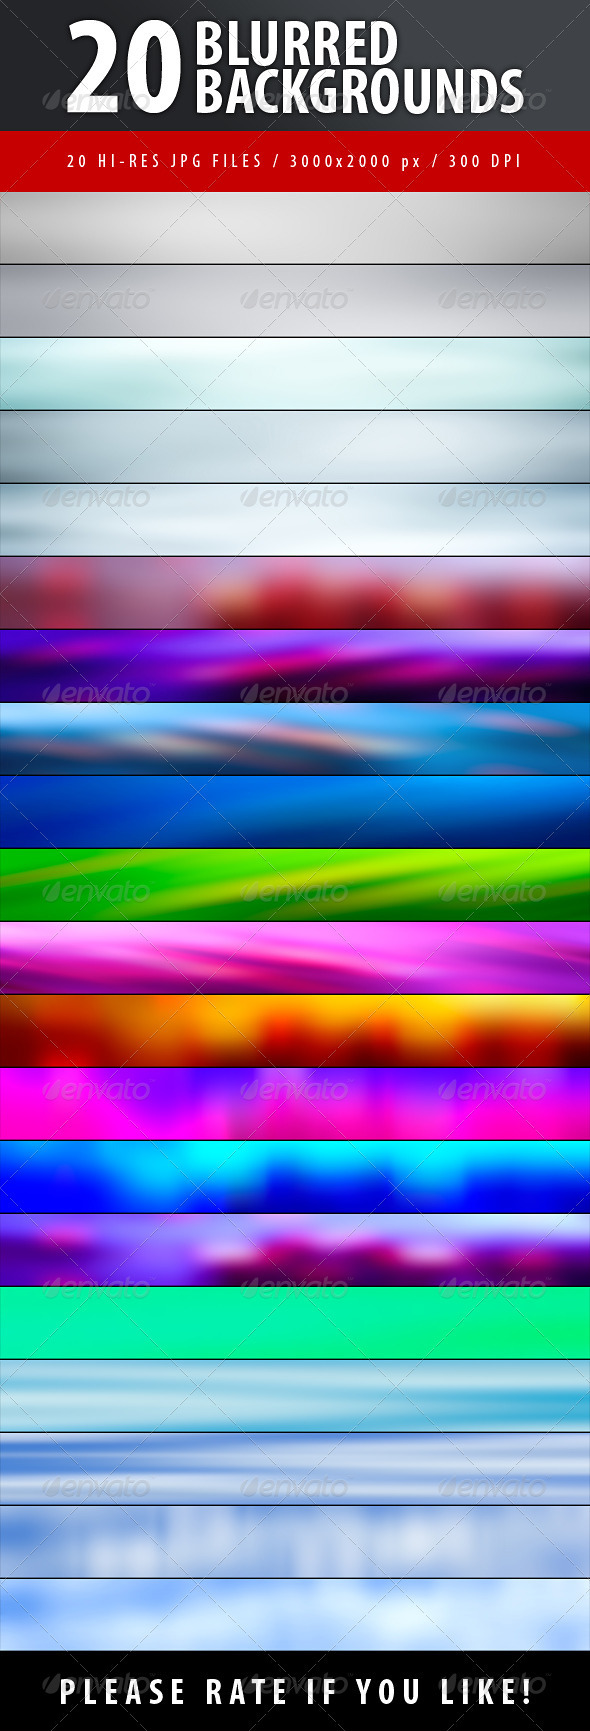 20 Blurred Backgrounds - Abstract Backgrounds